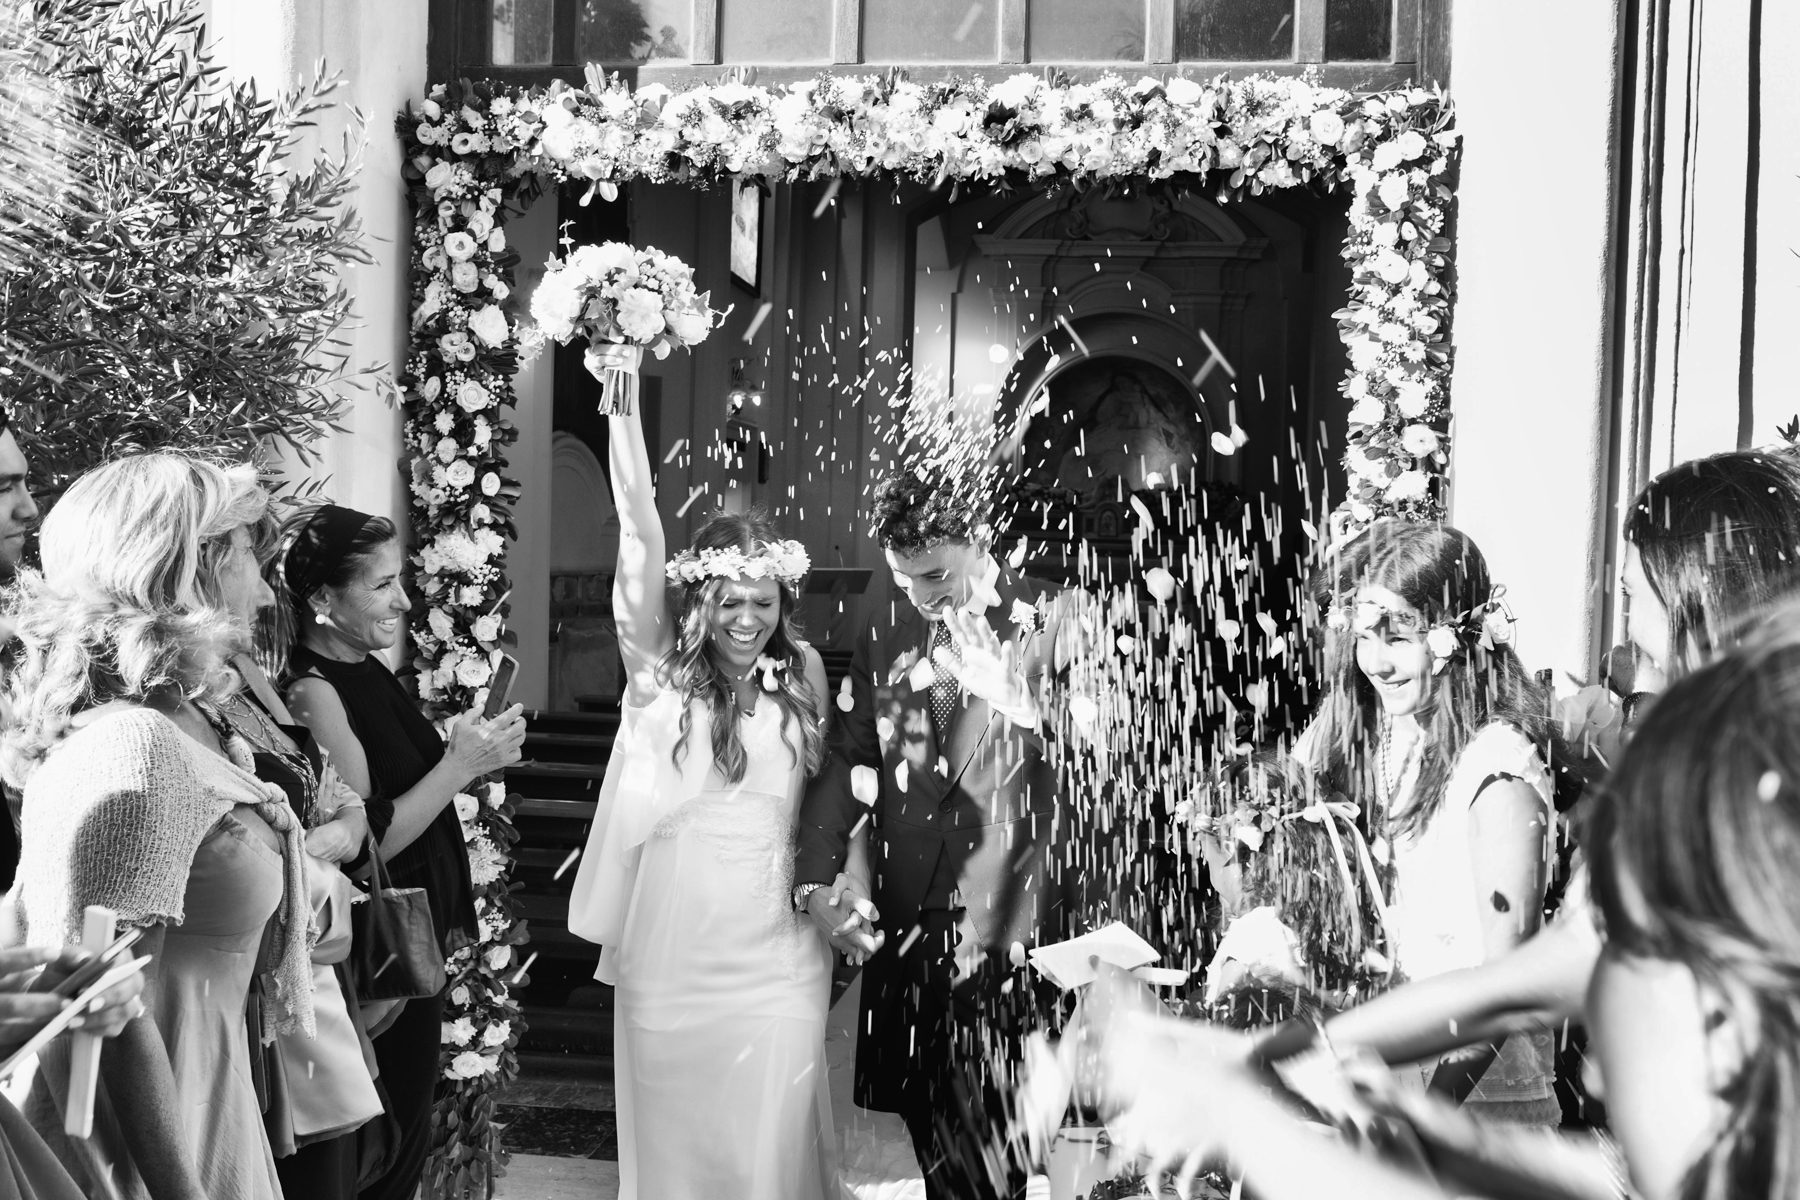 0179-_MG_7157-Modificafotografo-matrimonio-napoli-scattidamore